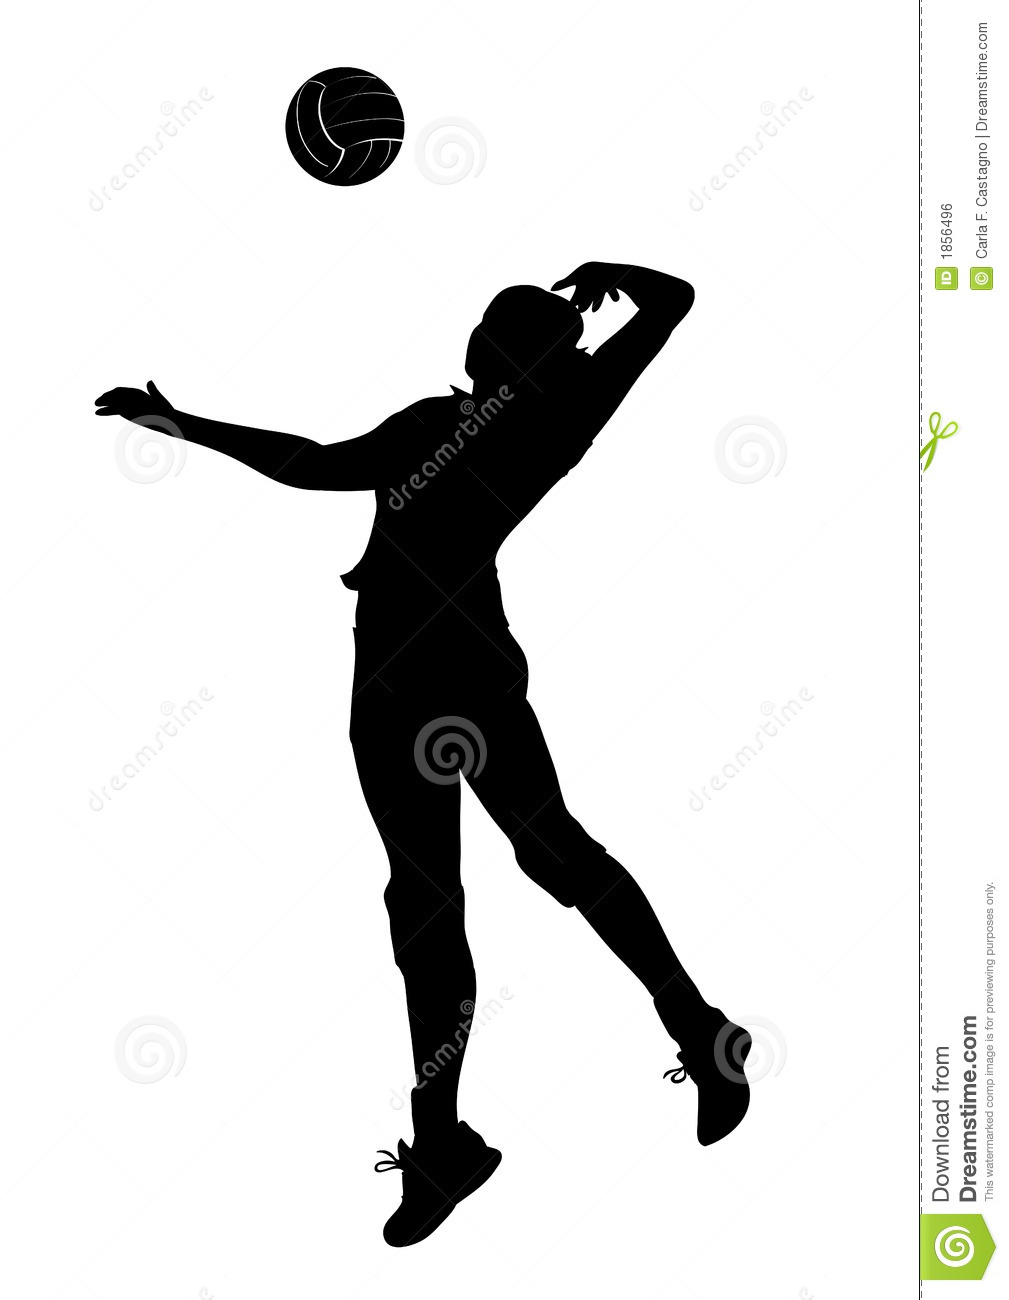 female volleyball player clipart clipart panda free clipart images rh clipartpanda com volleyball player setting clipart volleyball player clipart black and white